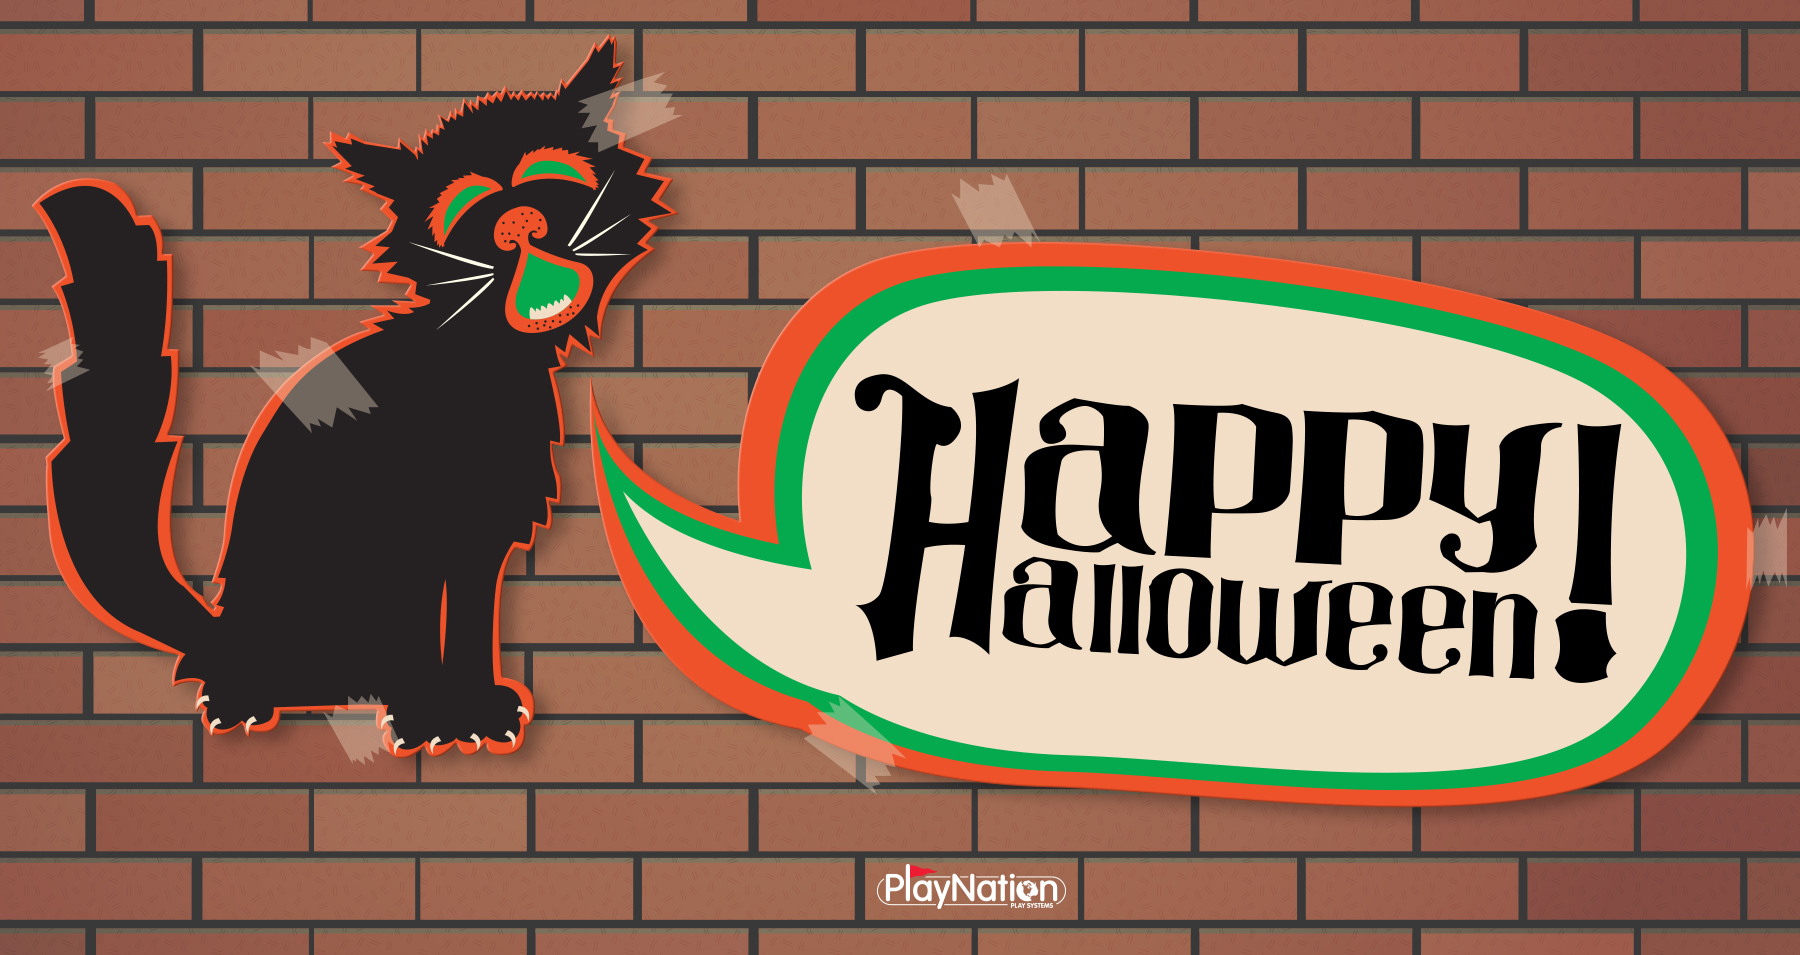 PlayNation Halloween Promo